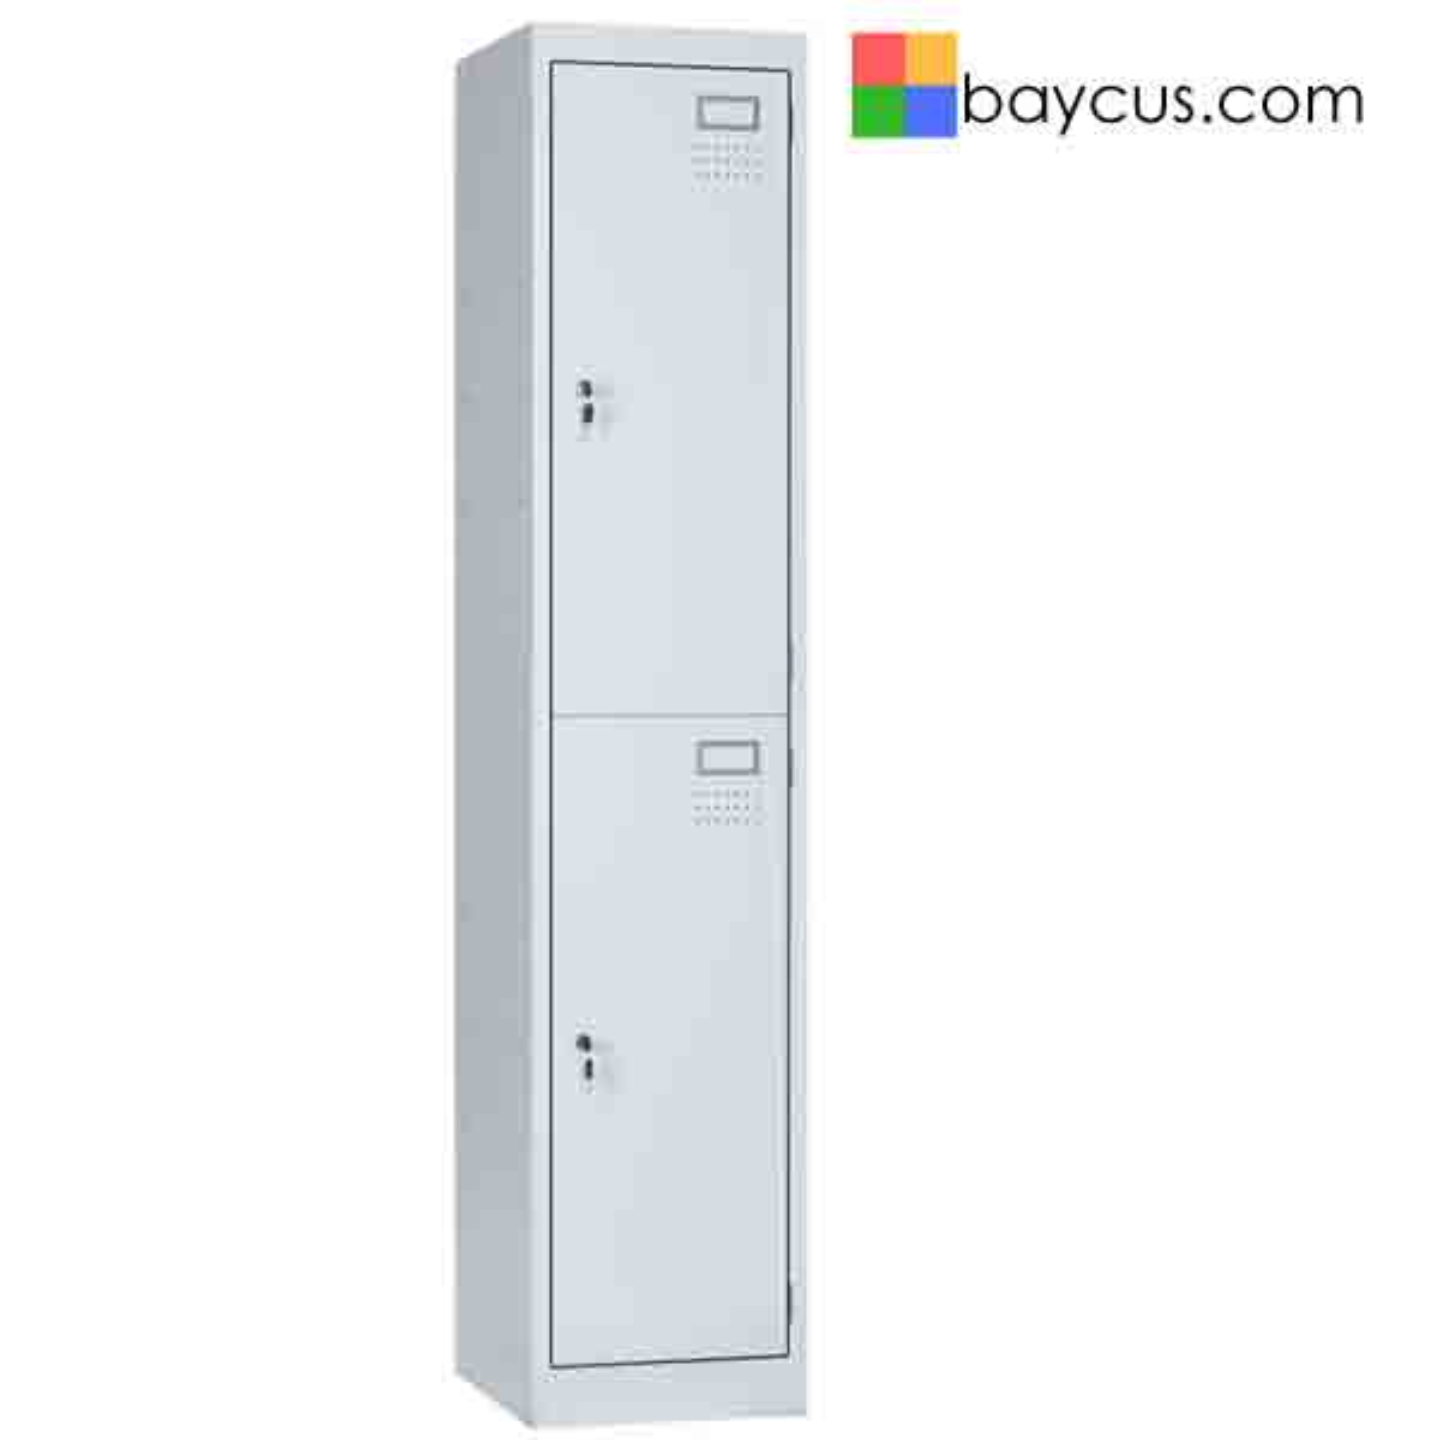 BY-BW2 2 Compartment Steel Locker